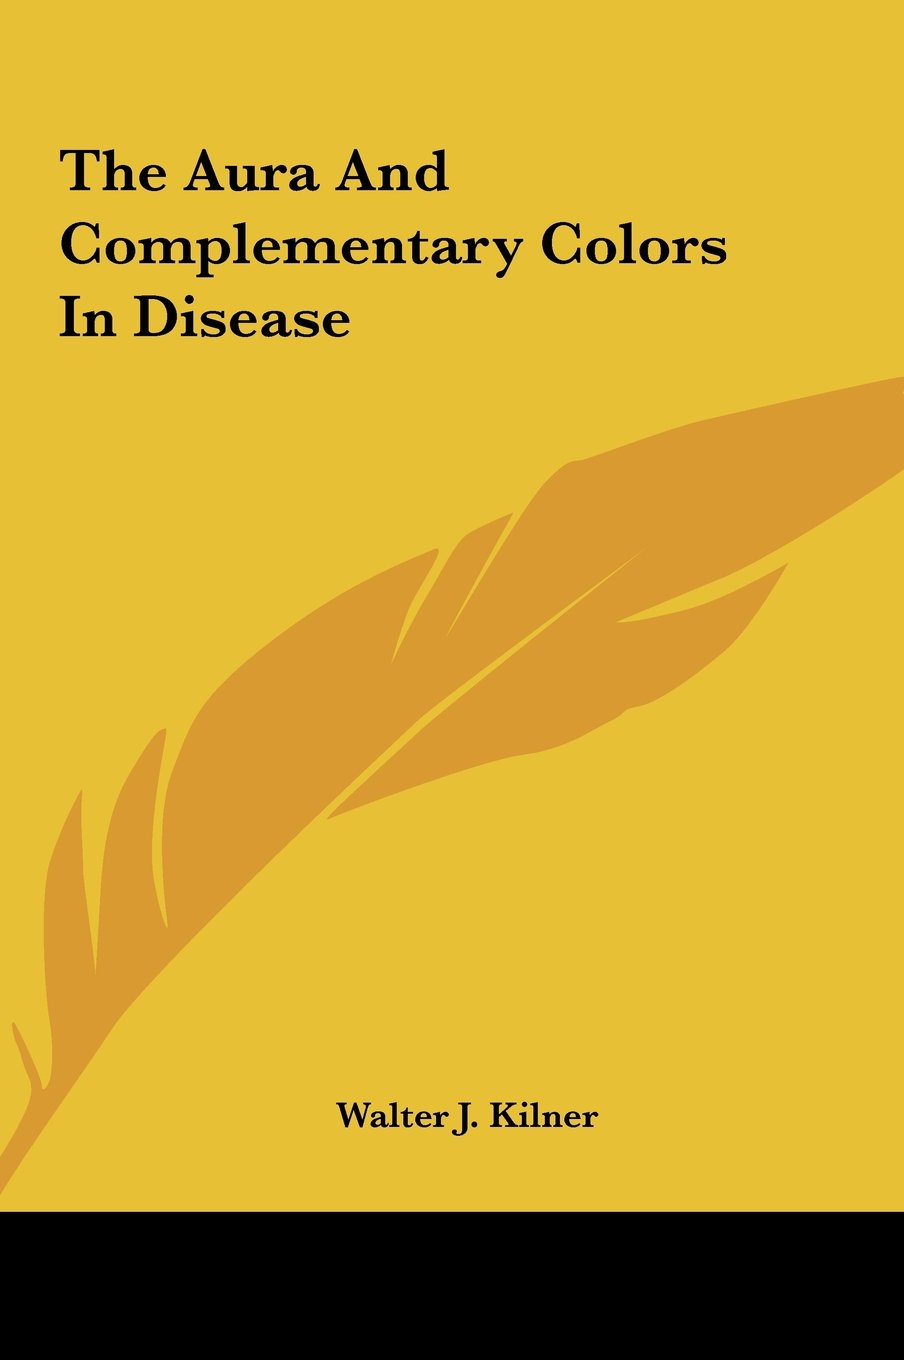 Download The Aura And Complementary Colors In Disease ebook